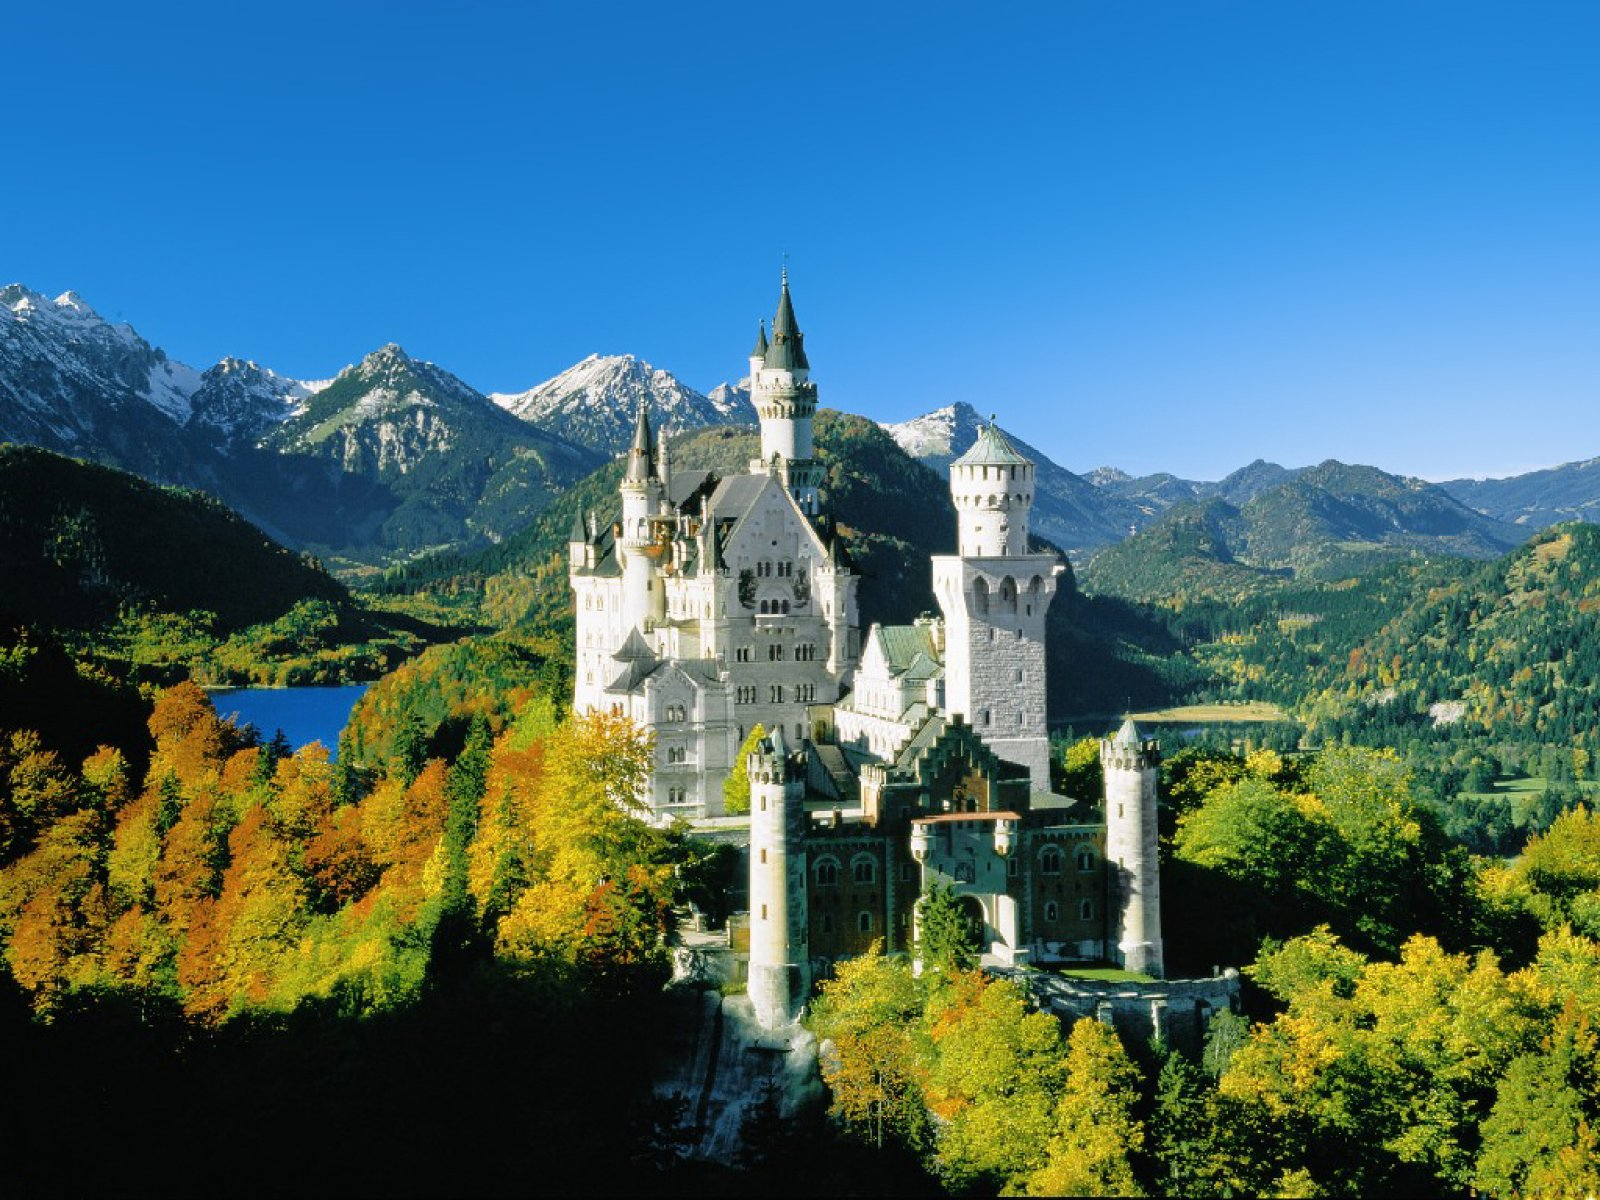 castle in Germany 3 computer desktop wallpapers pictures images 1600x1200